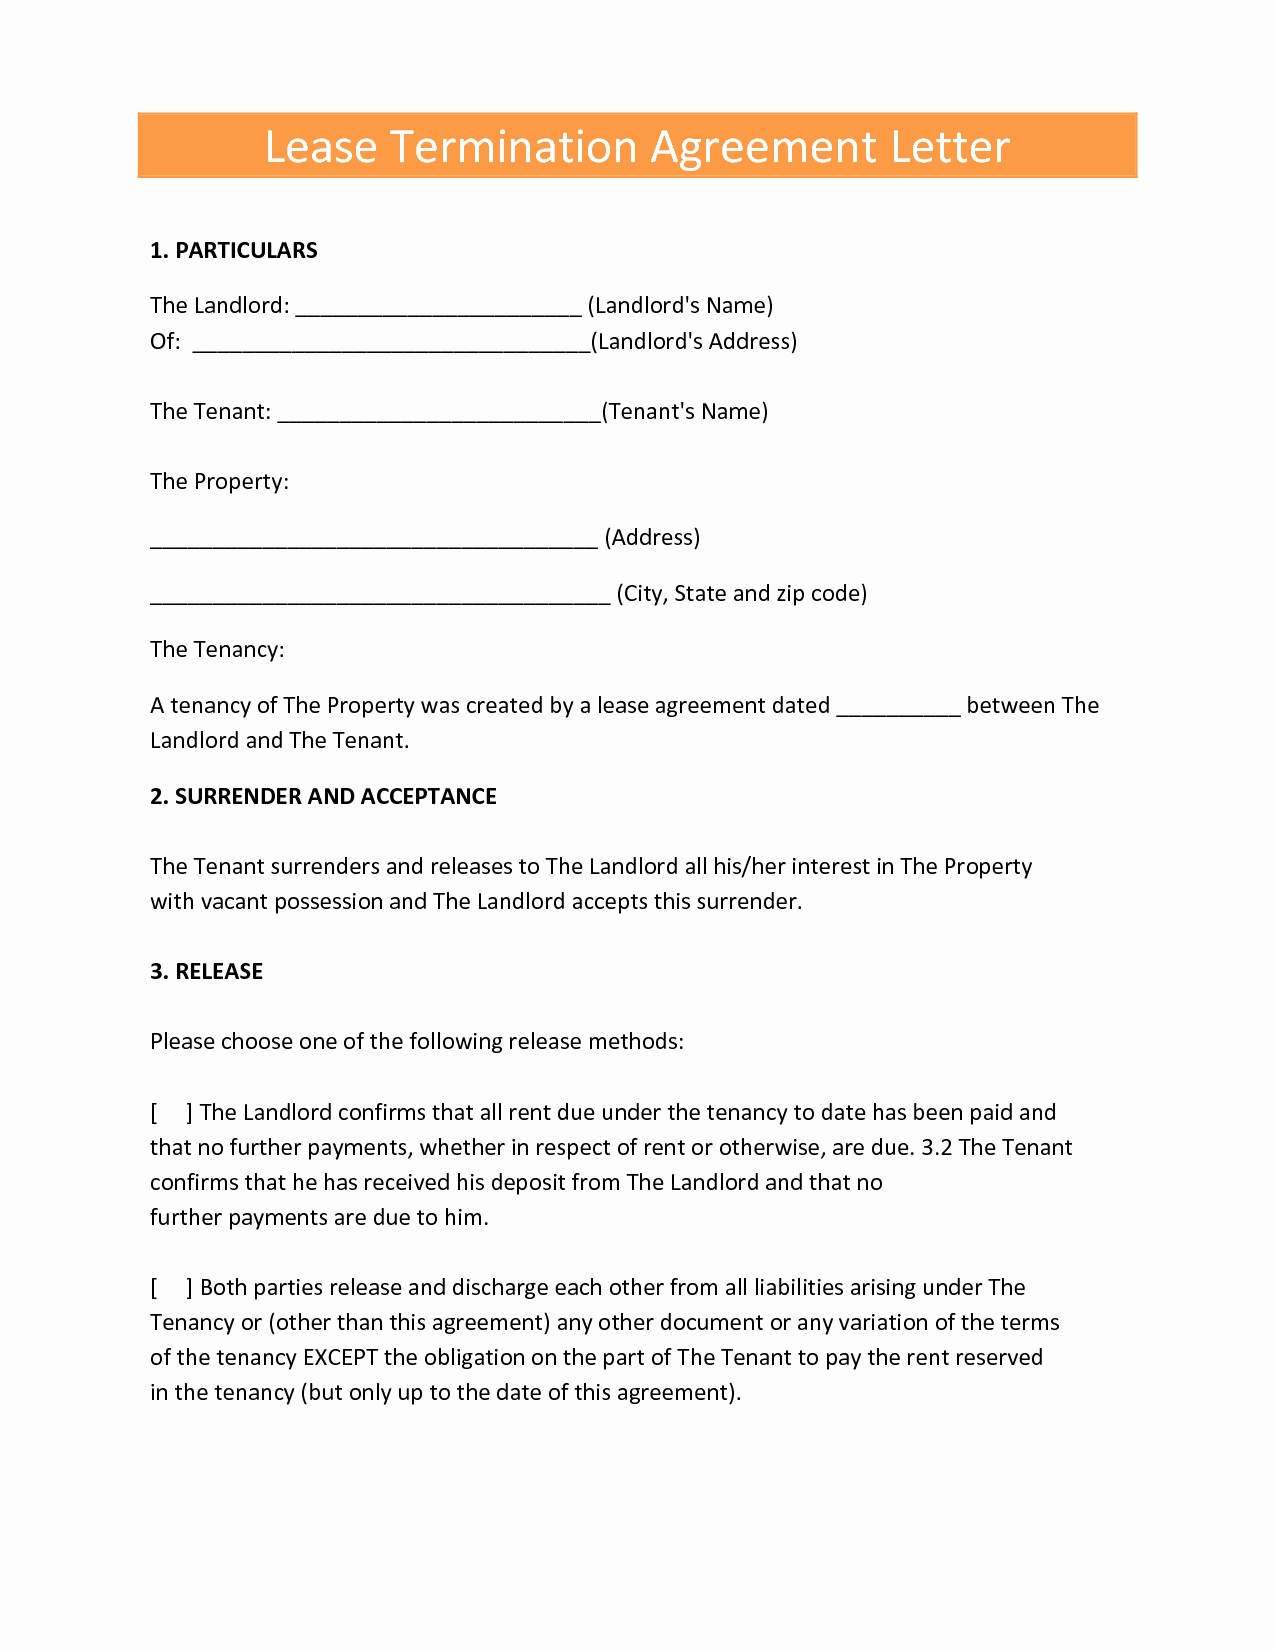 Early lease termination letter to landlord template collection early lease termination letter to landlord template 10 new early lease termination agreement thecheapjerseys Image collections